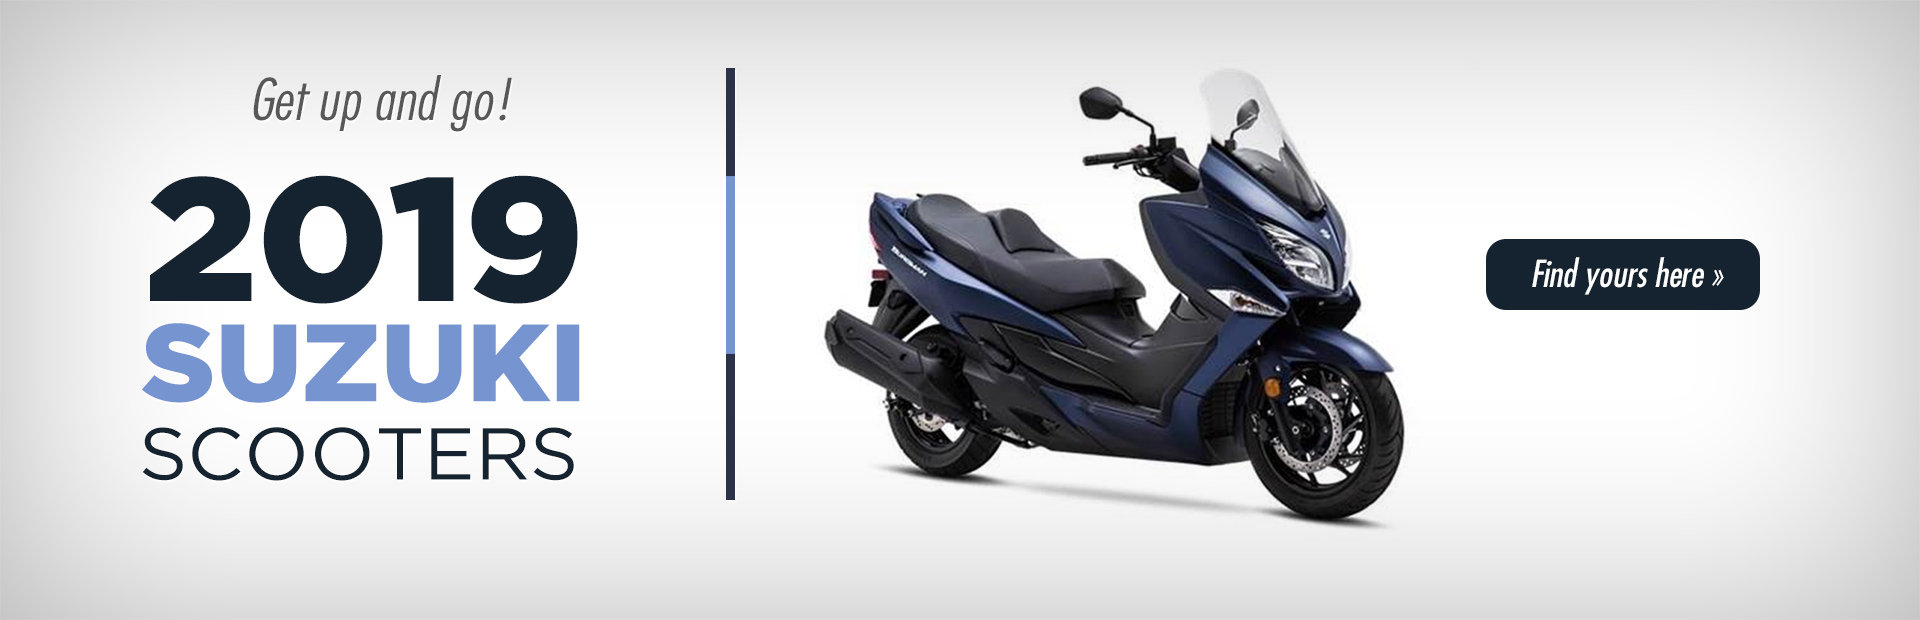 3f014c64f7d 2019 Suzuki Scooters. Find yours here.